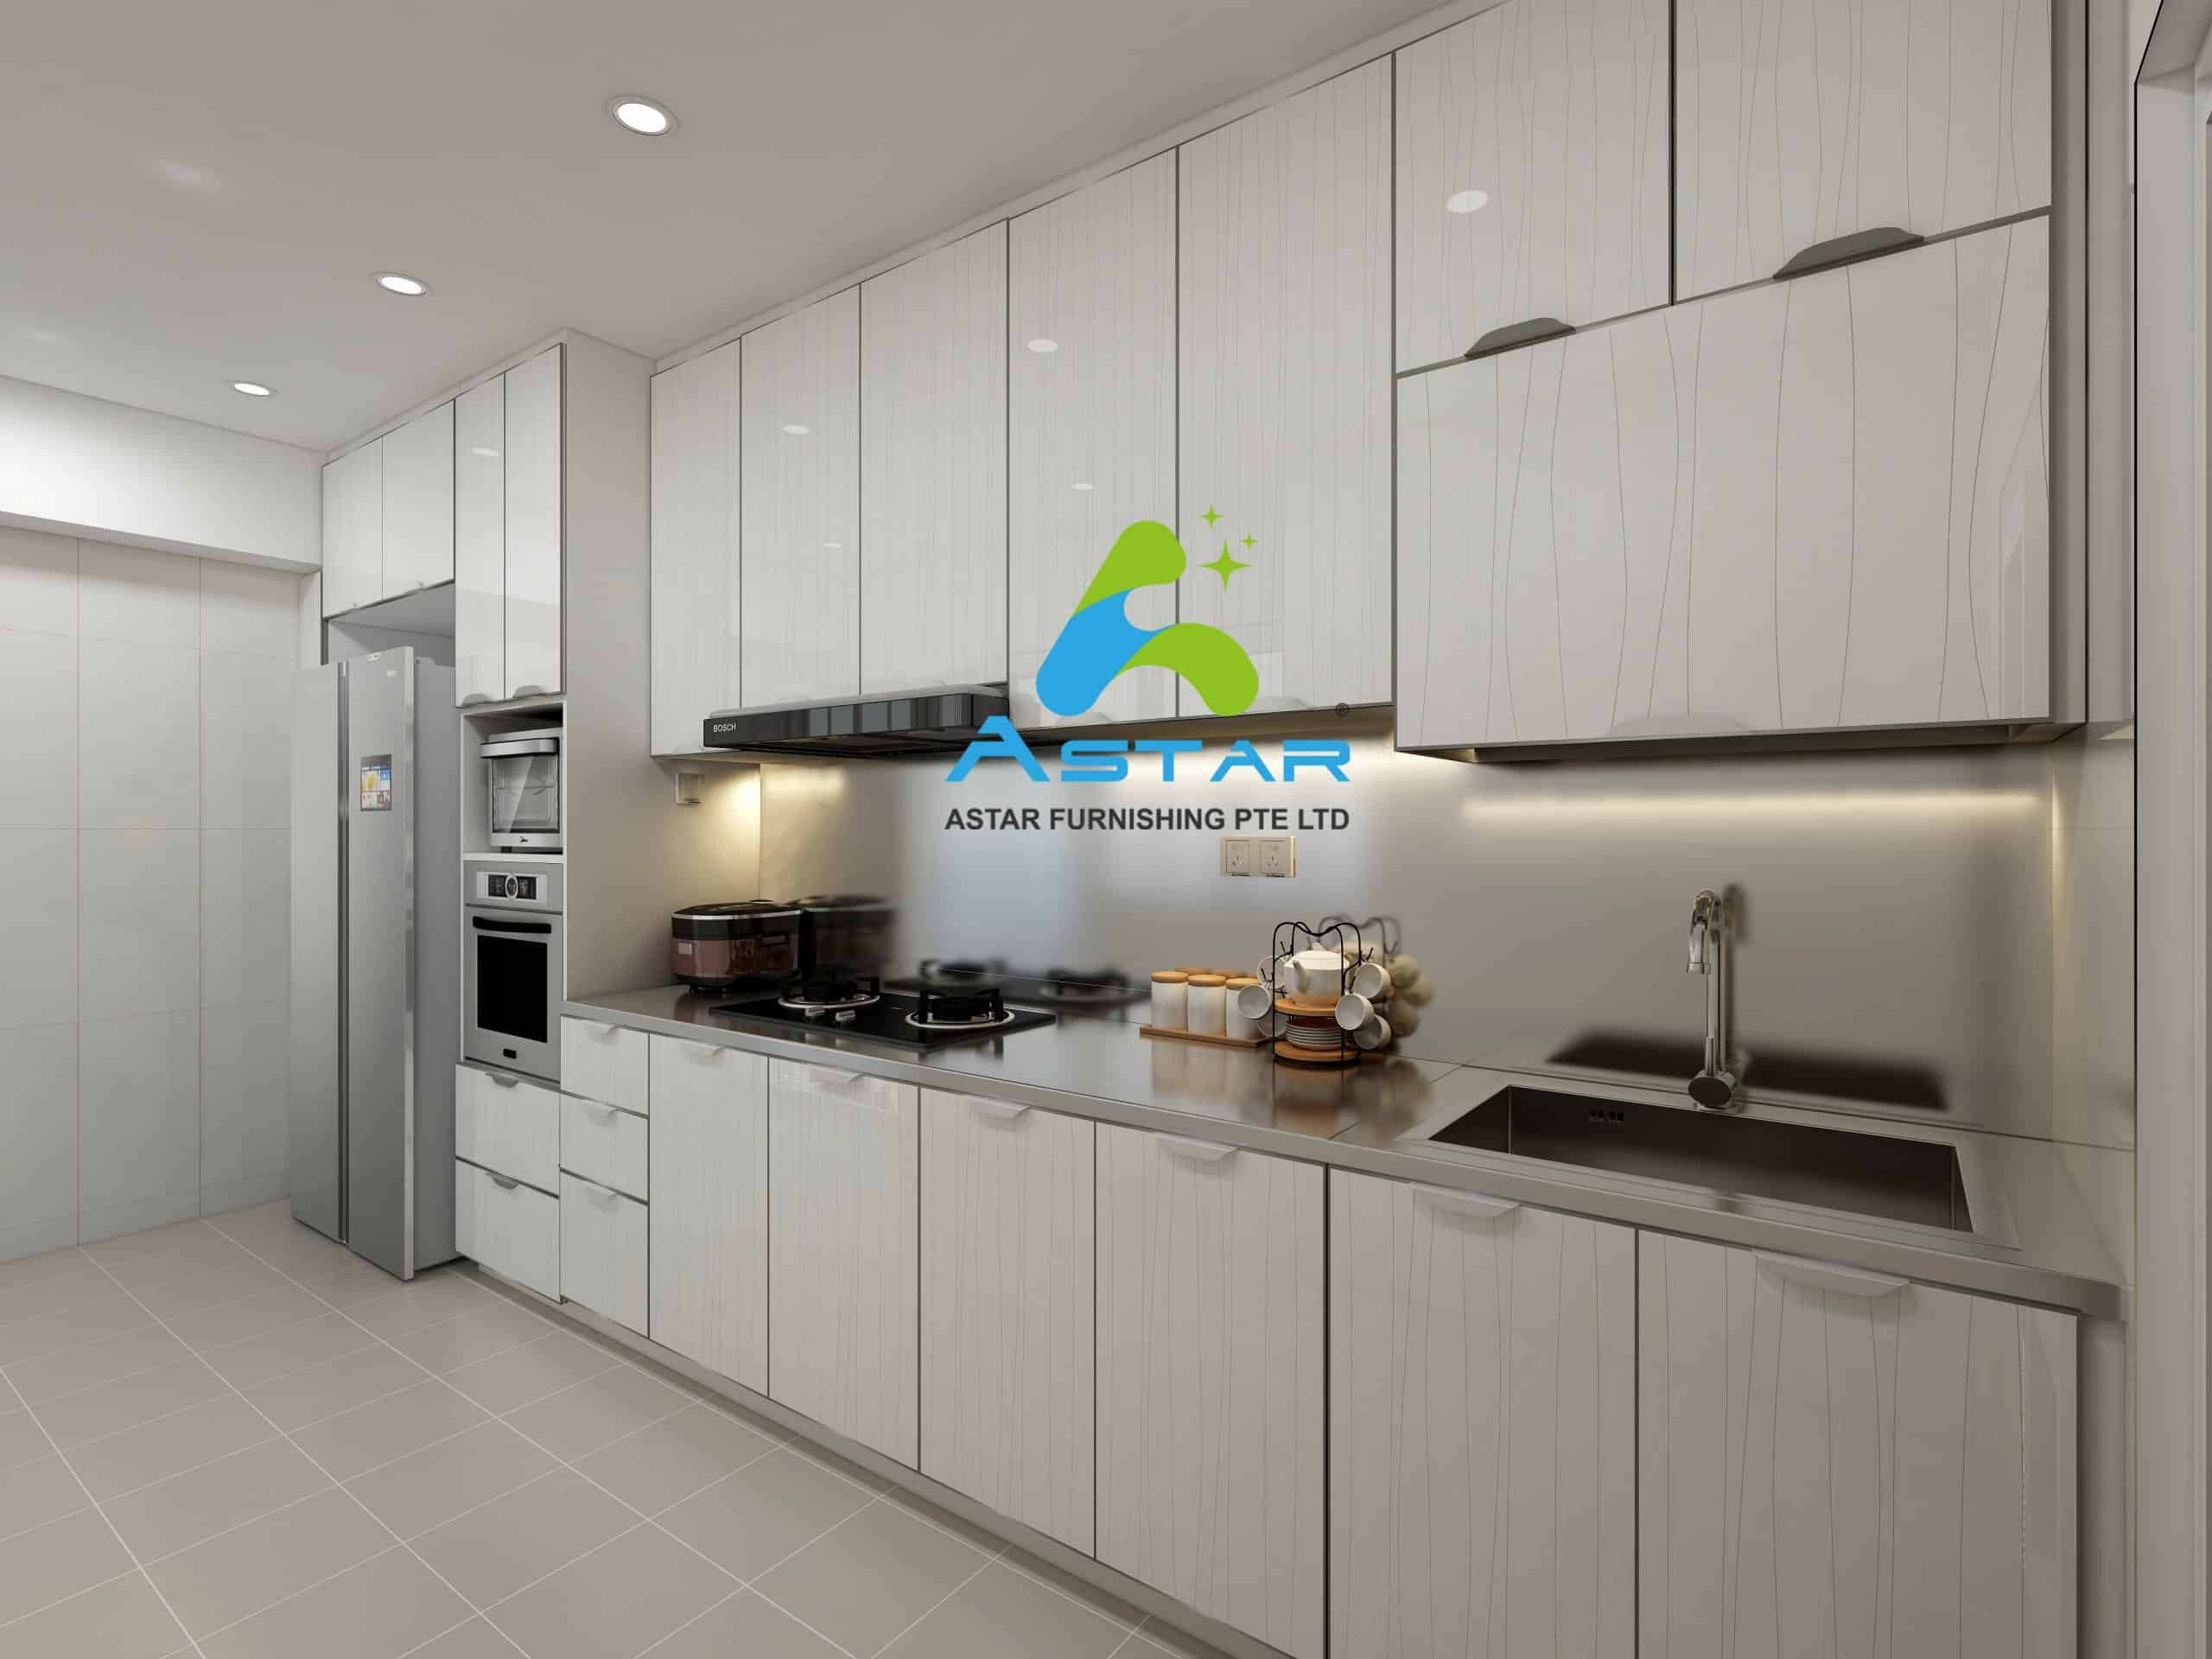 a star furnishing aluminium projects 11. Blk 96A Henderson Road 065 scaled